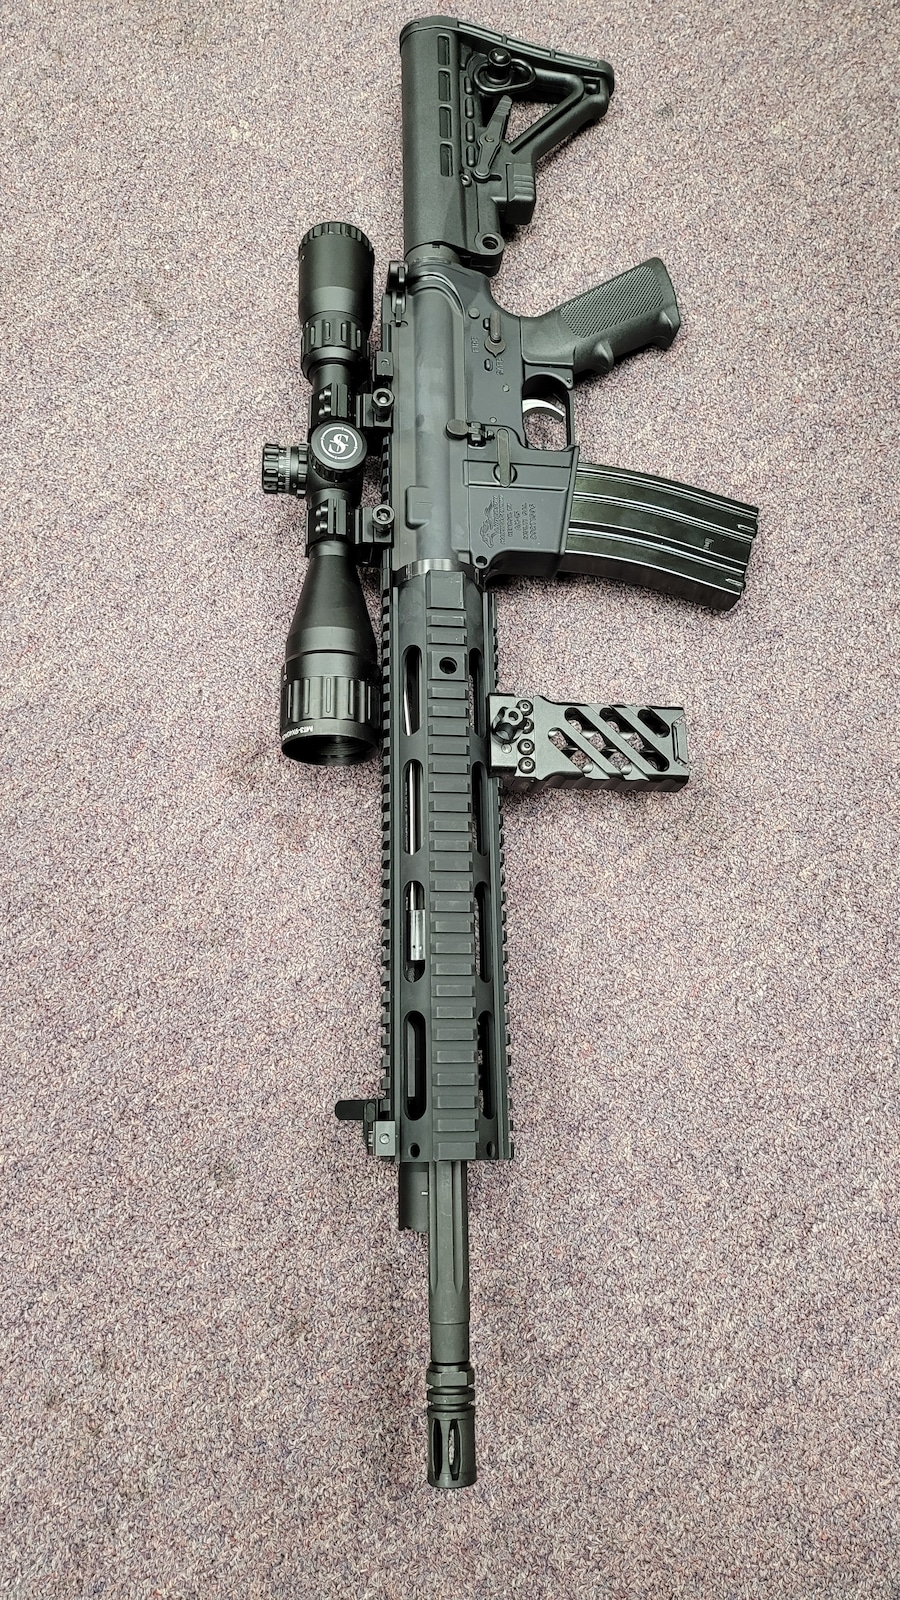 ANDERSON MFG. fully loaded ar15 am15 with 30rd magazine